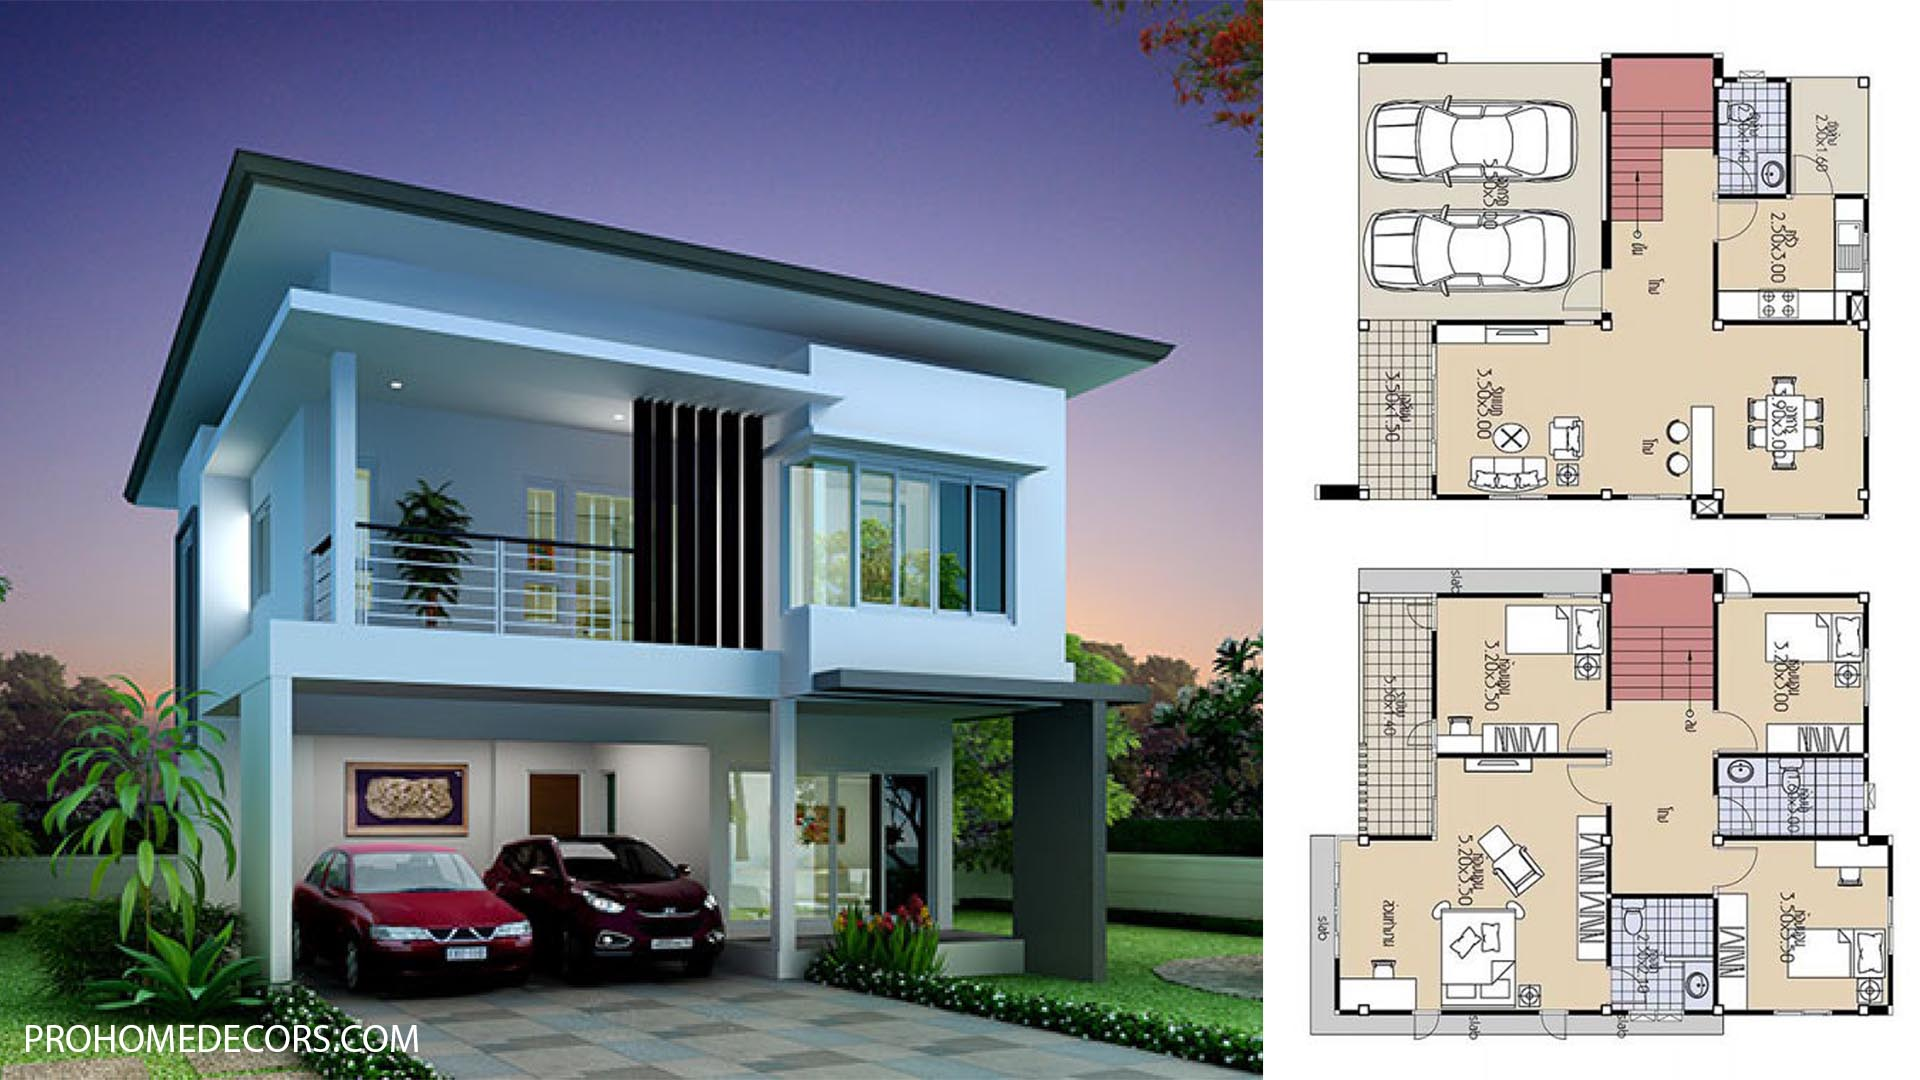 House Plans 9×10.5 with 4 Bedrooms